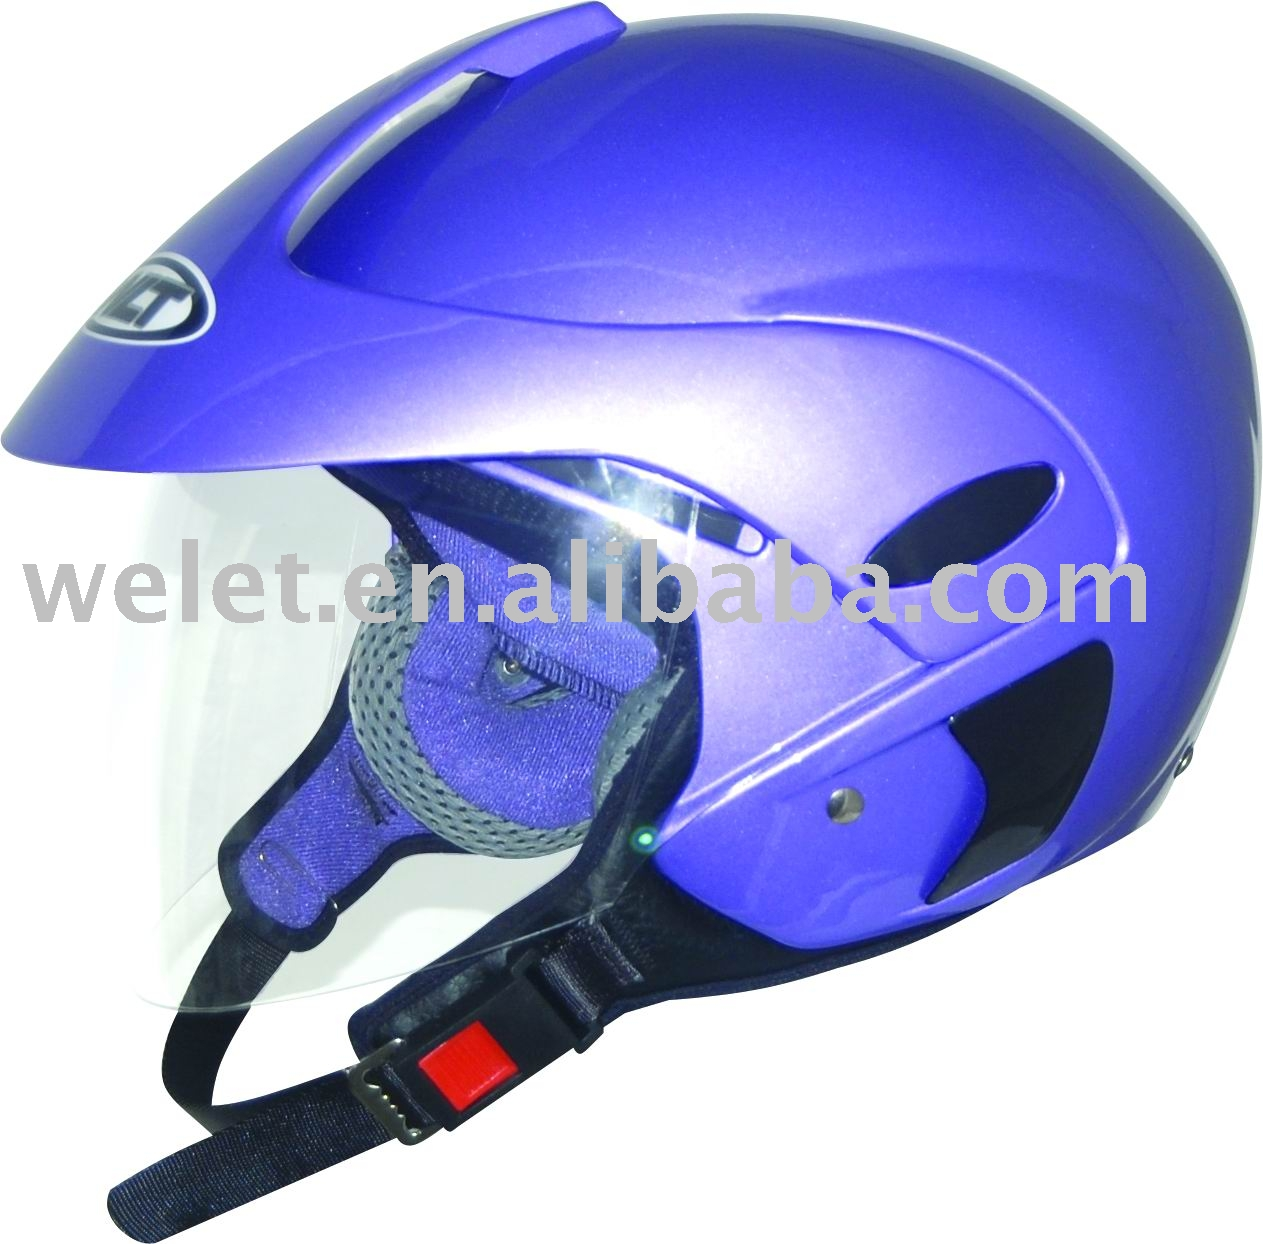 Half face helmet motorcycle open face helmet purple motorcycle helmet